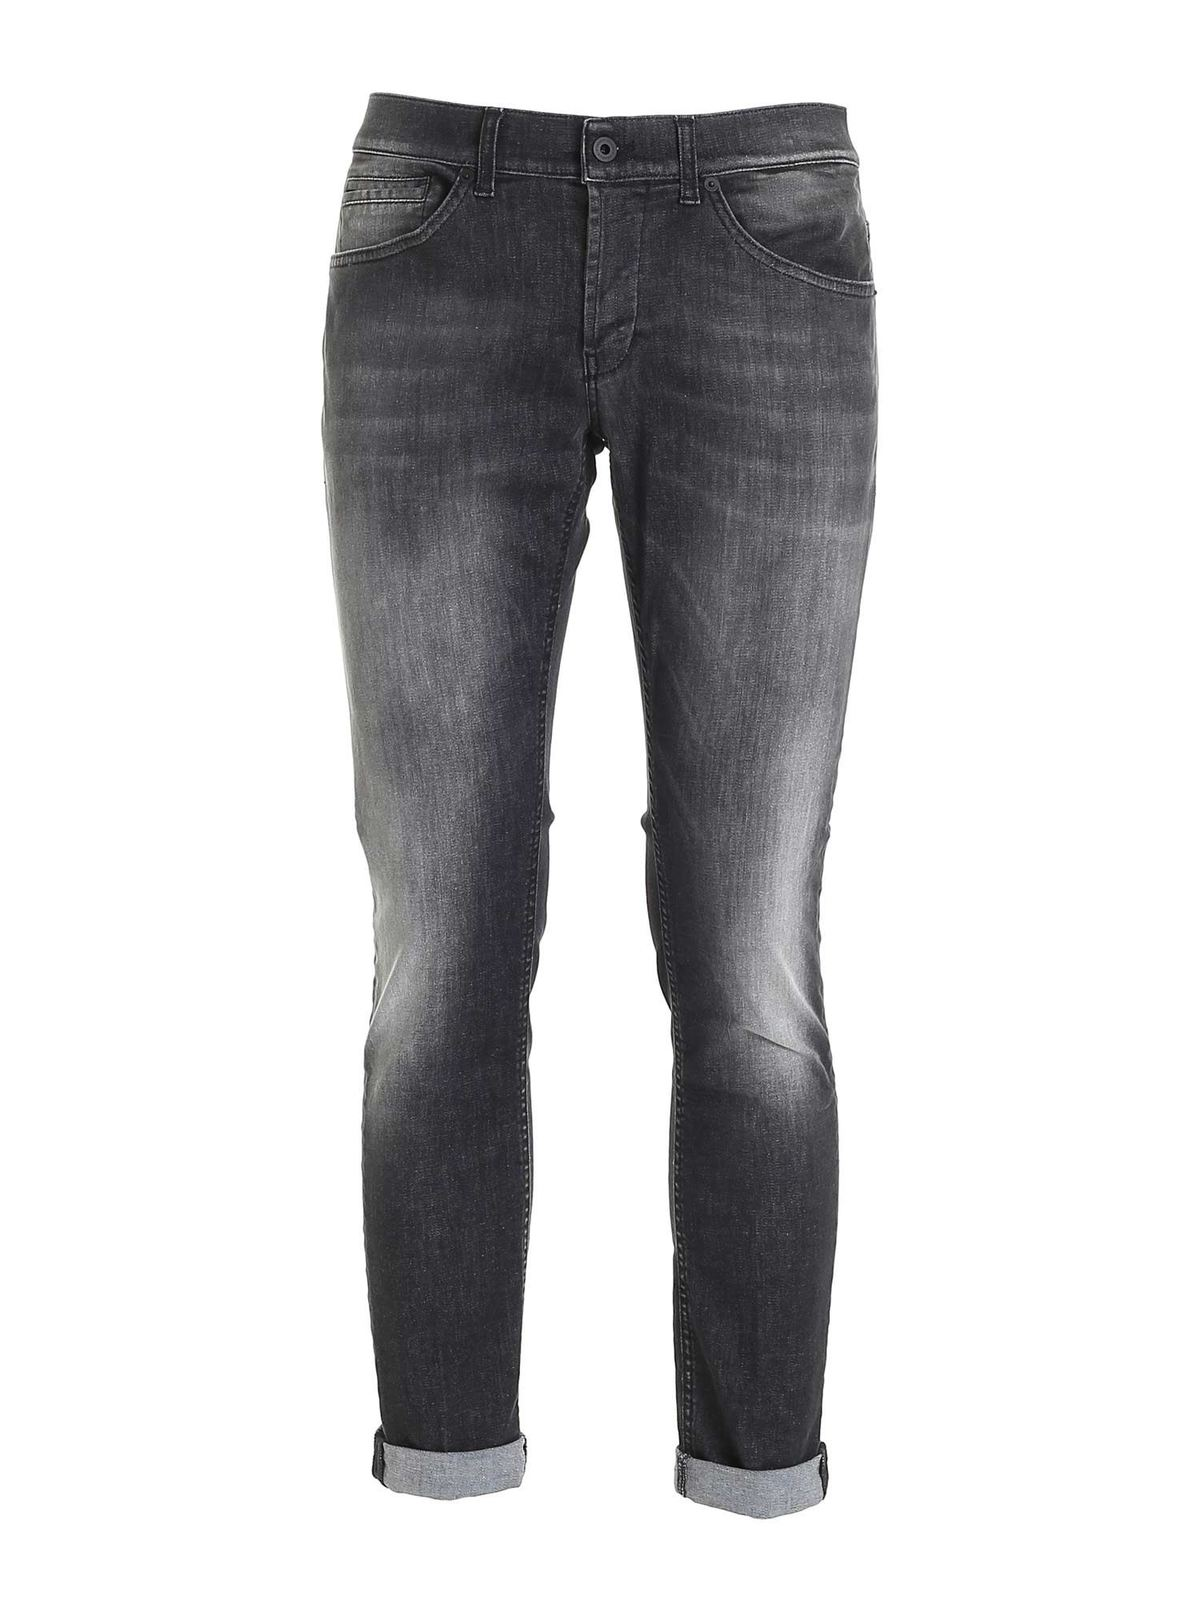 Dondup Cottons GEORGE JEANS IN FADED BLACK